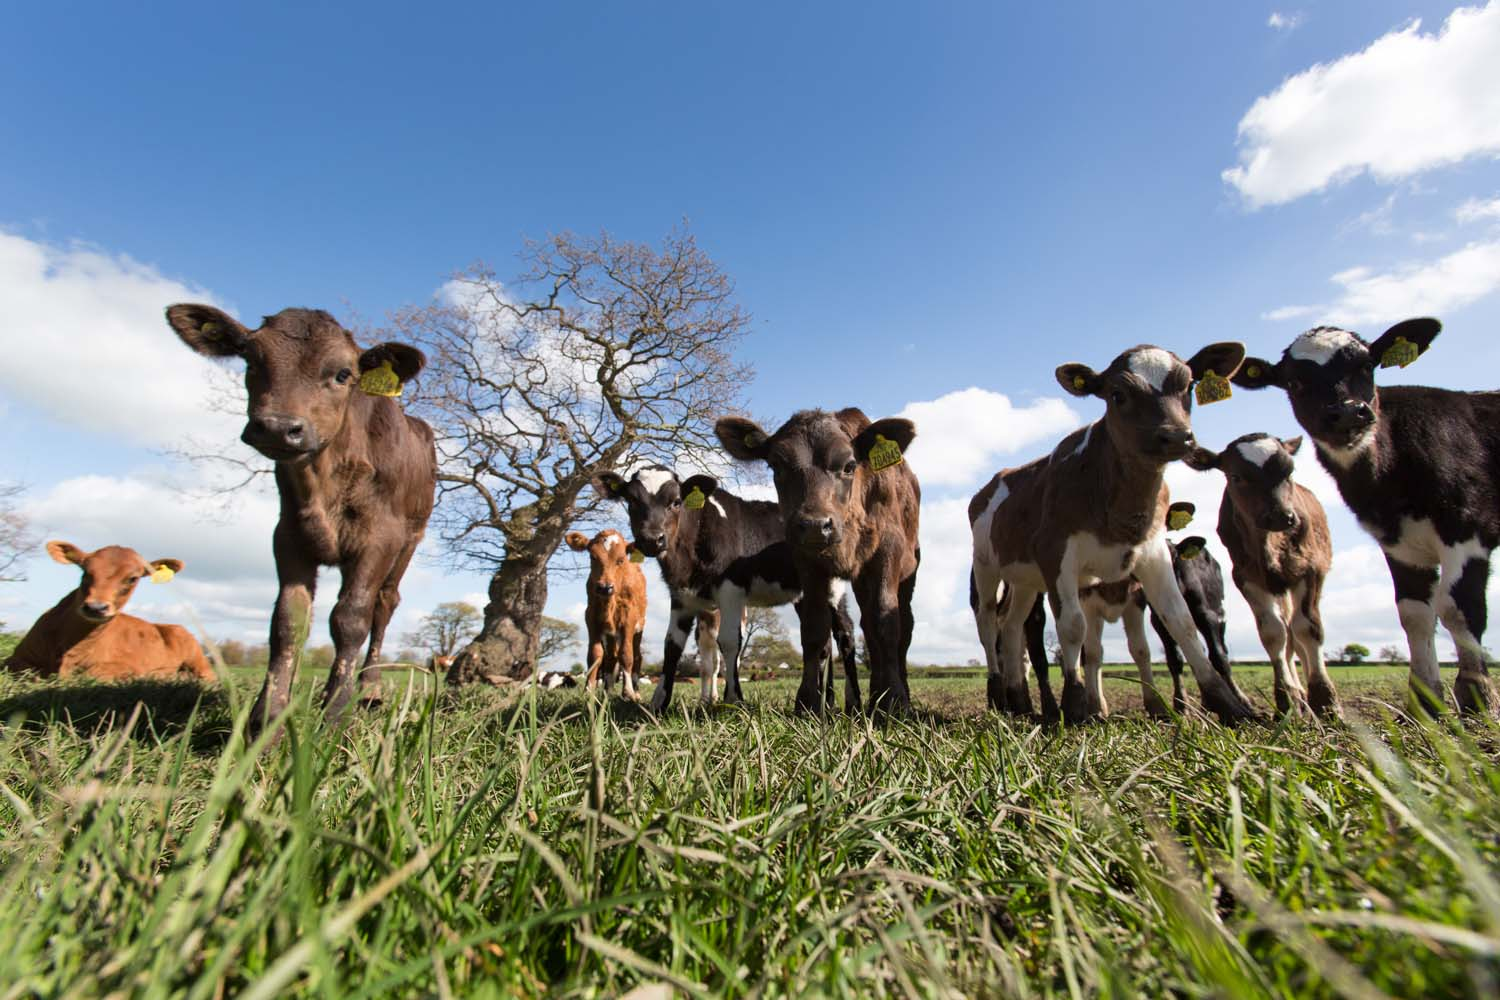 Village of Handley, England. Picturesque spring view of calves grazing in a field near the Cheshire village of Handley.